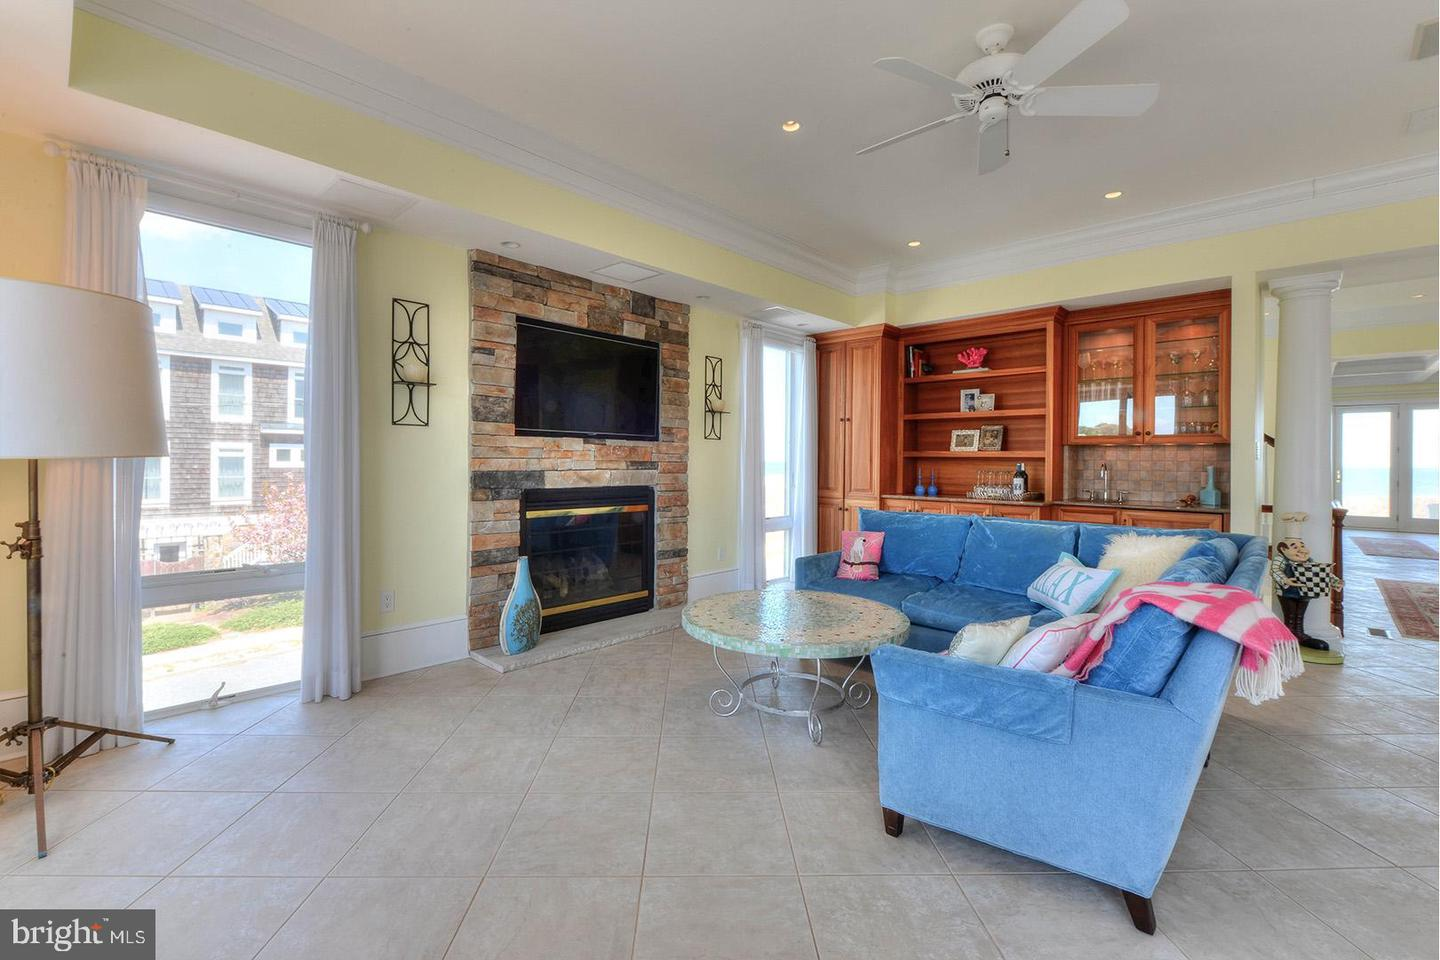 DESU159700-304100429906-2020-05-01-17-16-51 4 Prospect St | Rehoboth Beach, DE Real Estate For Sale | MLS# Desu159700  - Lee Ann Group